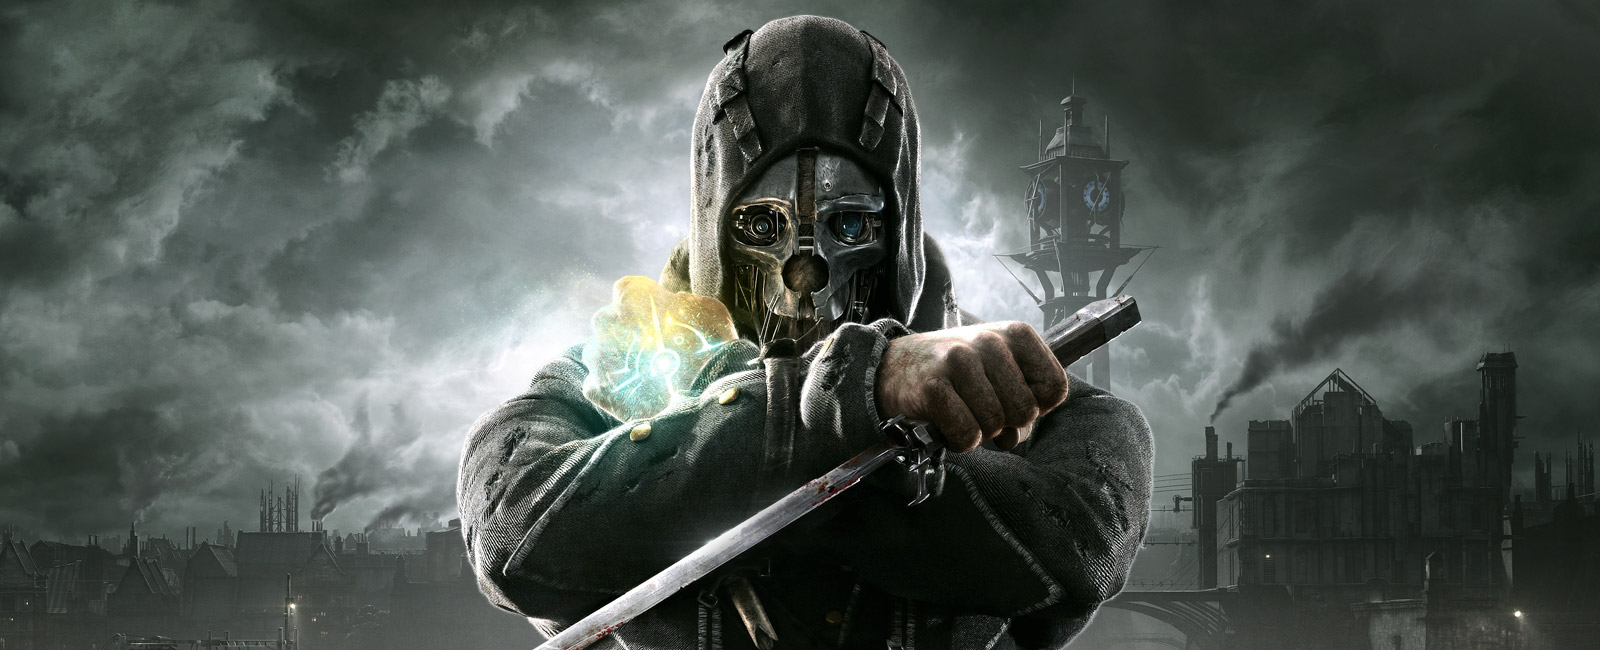 dishonored wallpaper | free | download